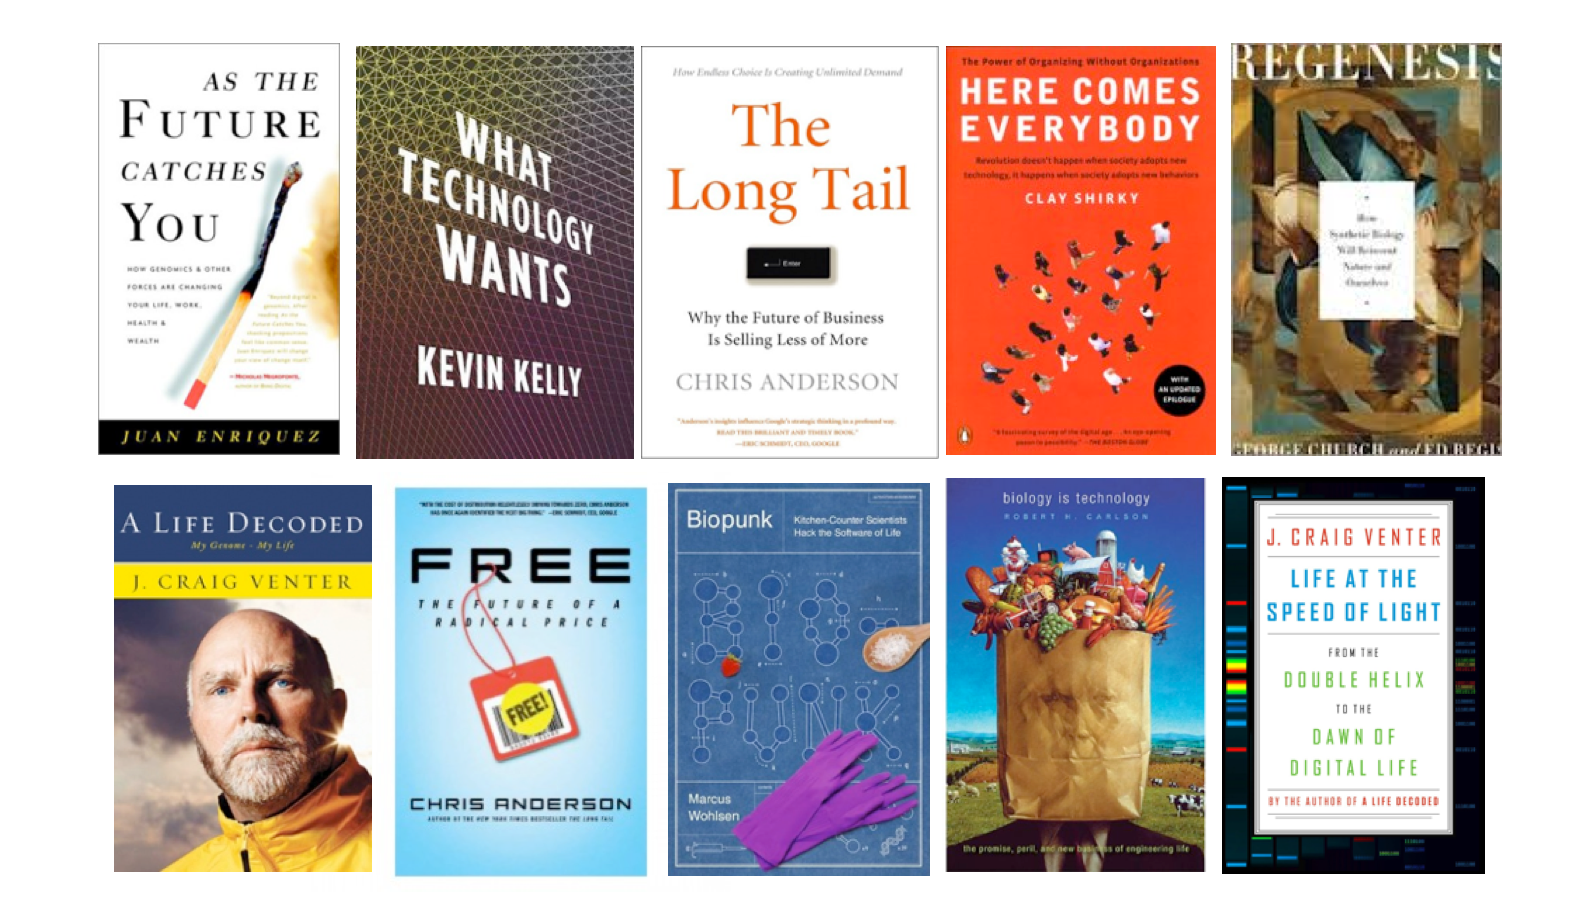 Great books to get one started in synthetic biology